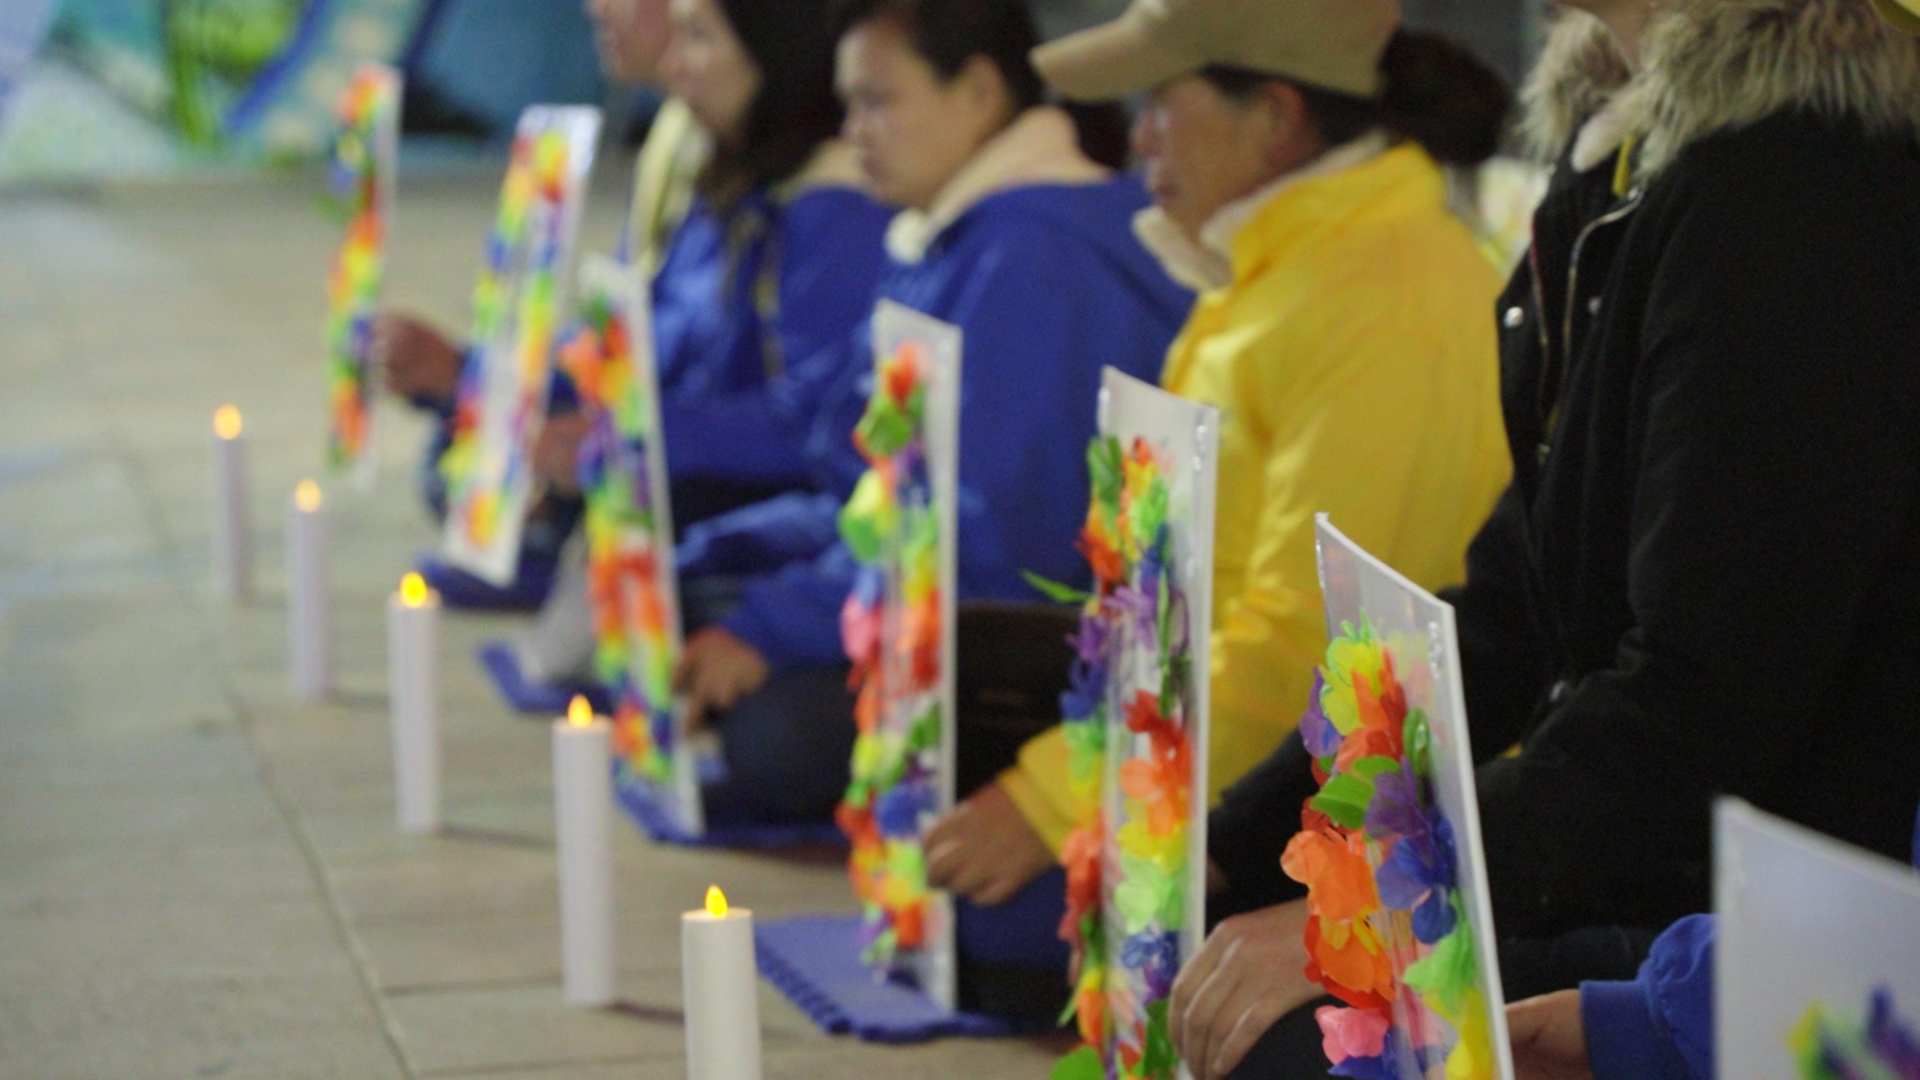 You are currently viewing Candlelight Vigil in Perth Commemorates Falun Gong Adherents Killed by CCP